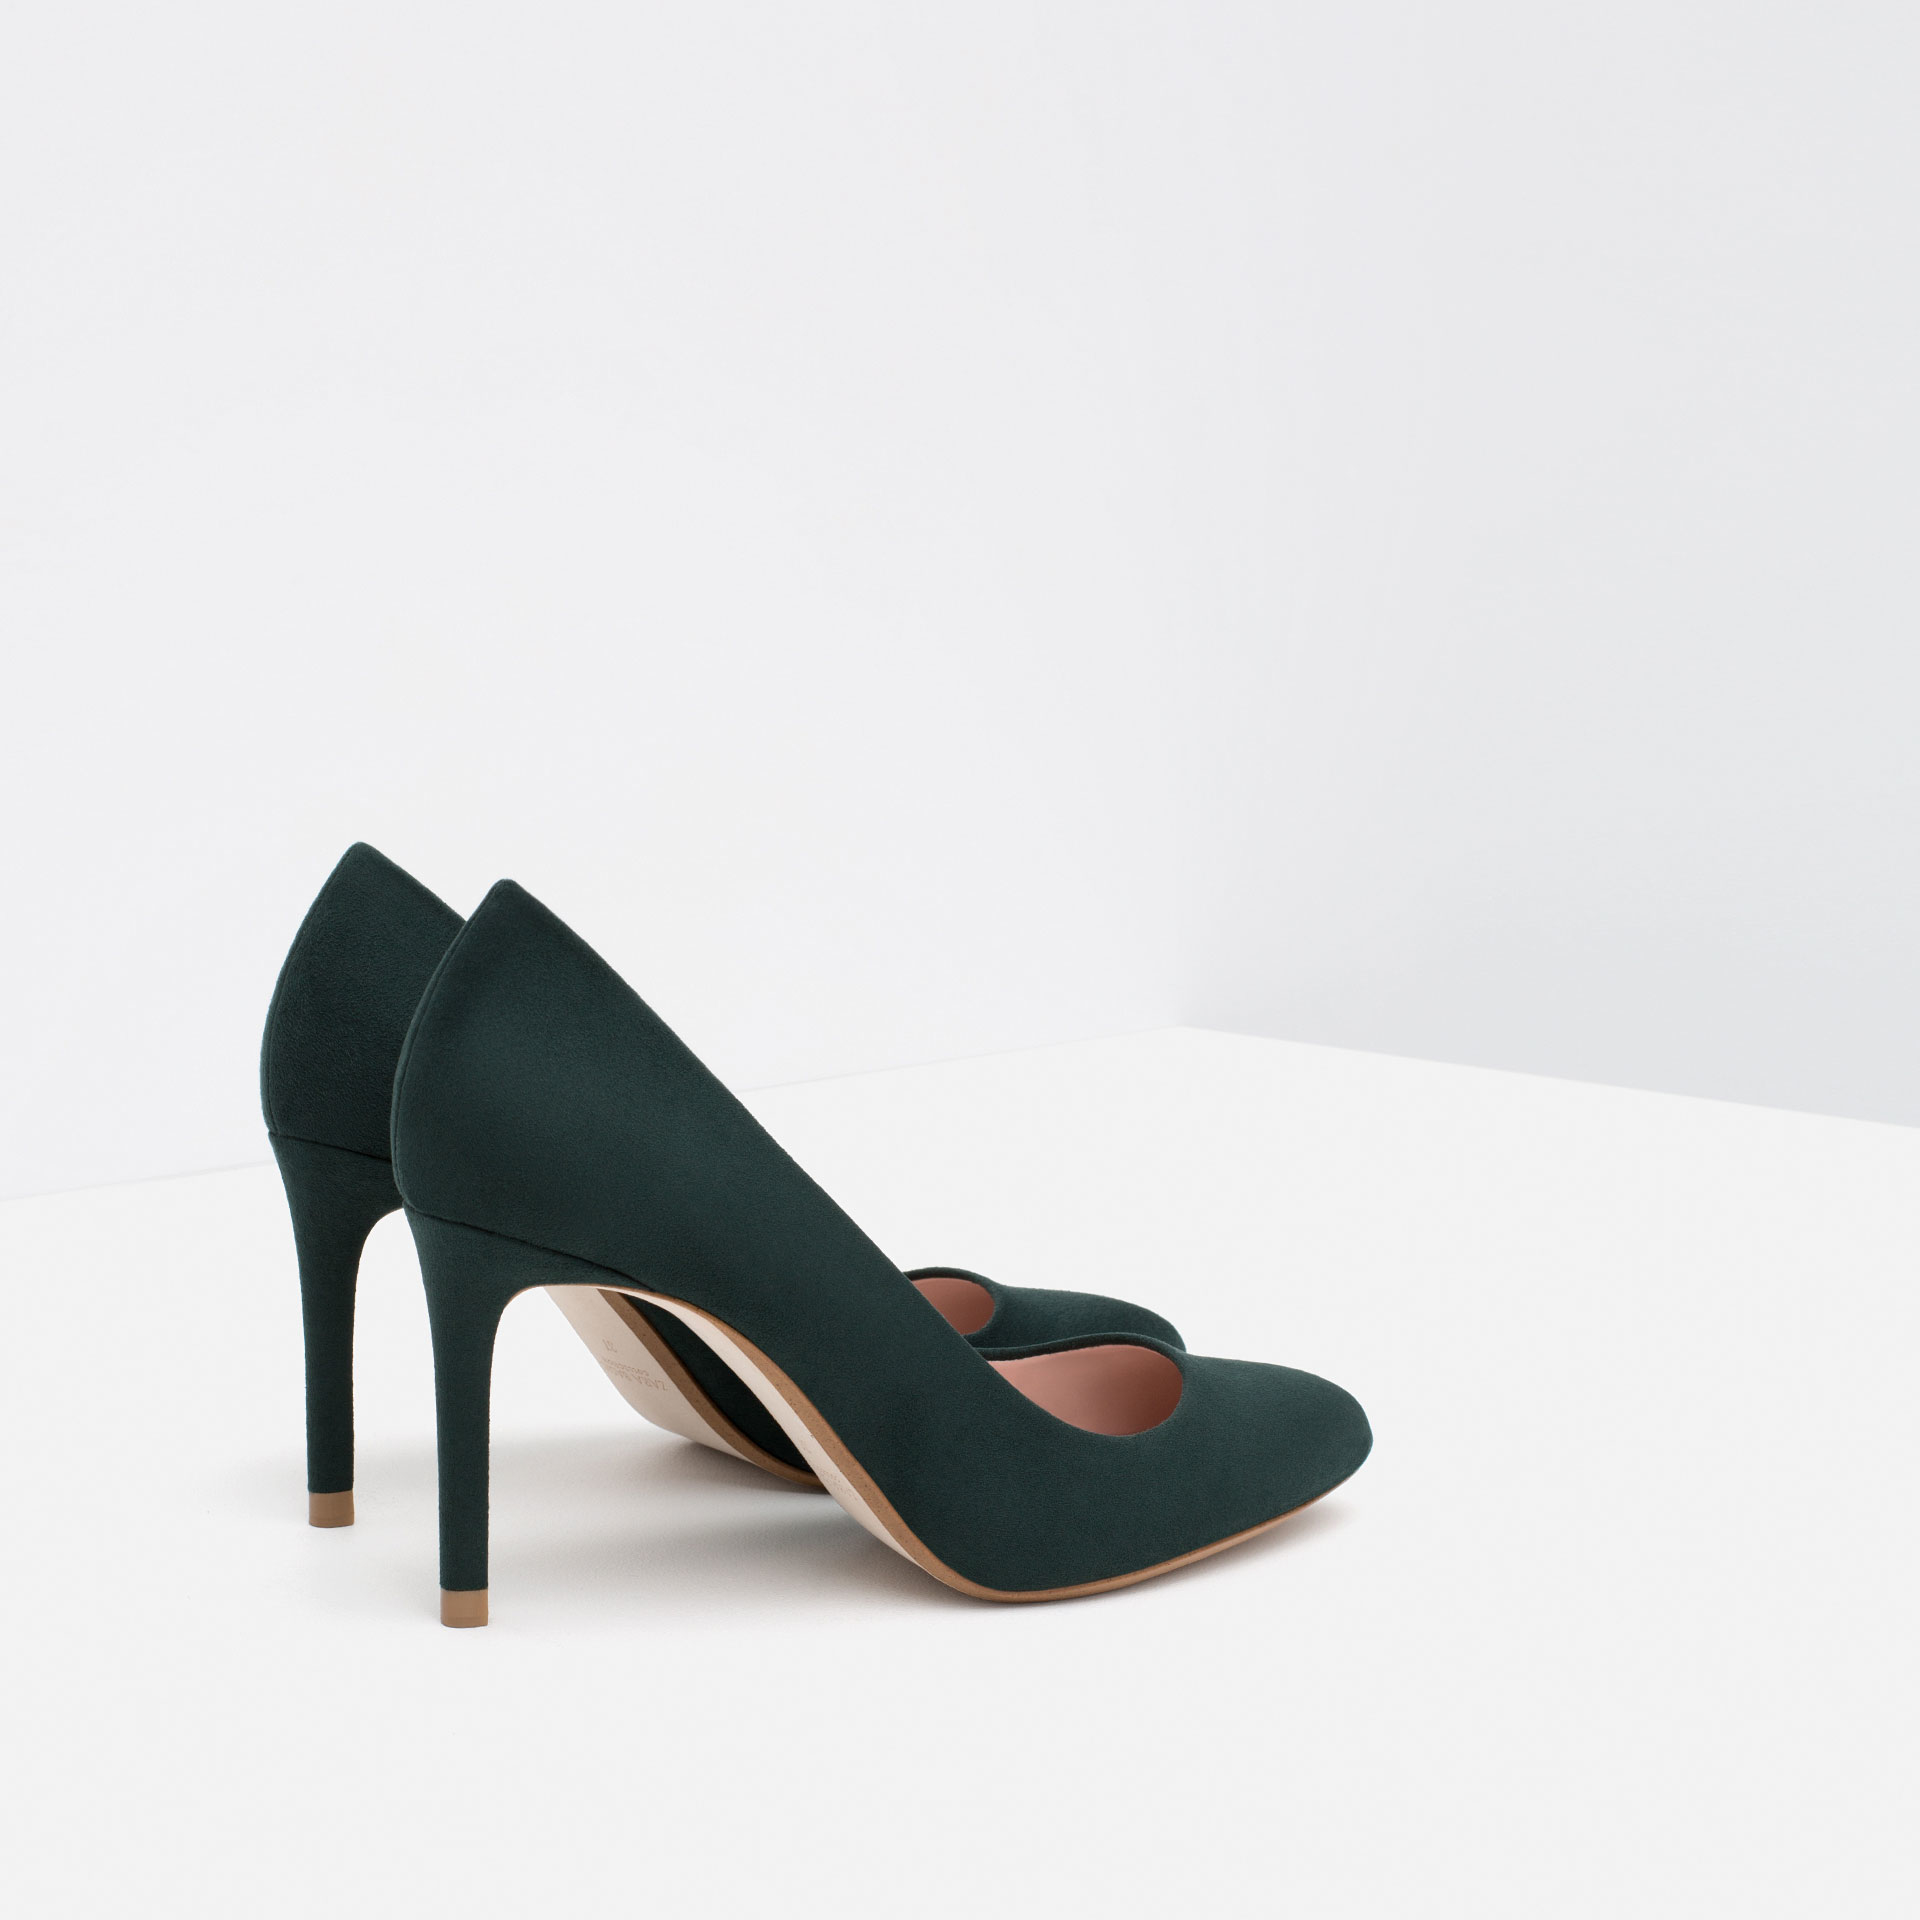 Cool Zara Flat Leather Shoes With Block Heel In Black  Lyst